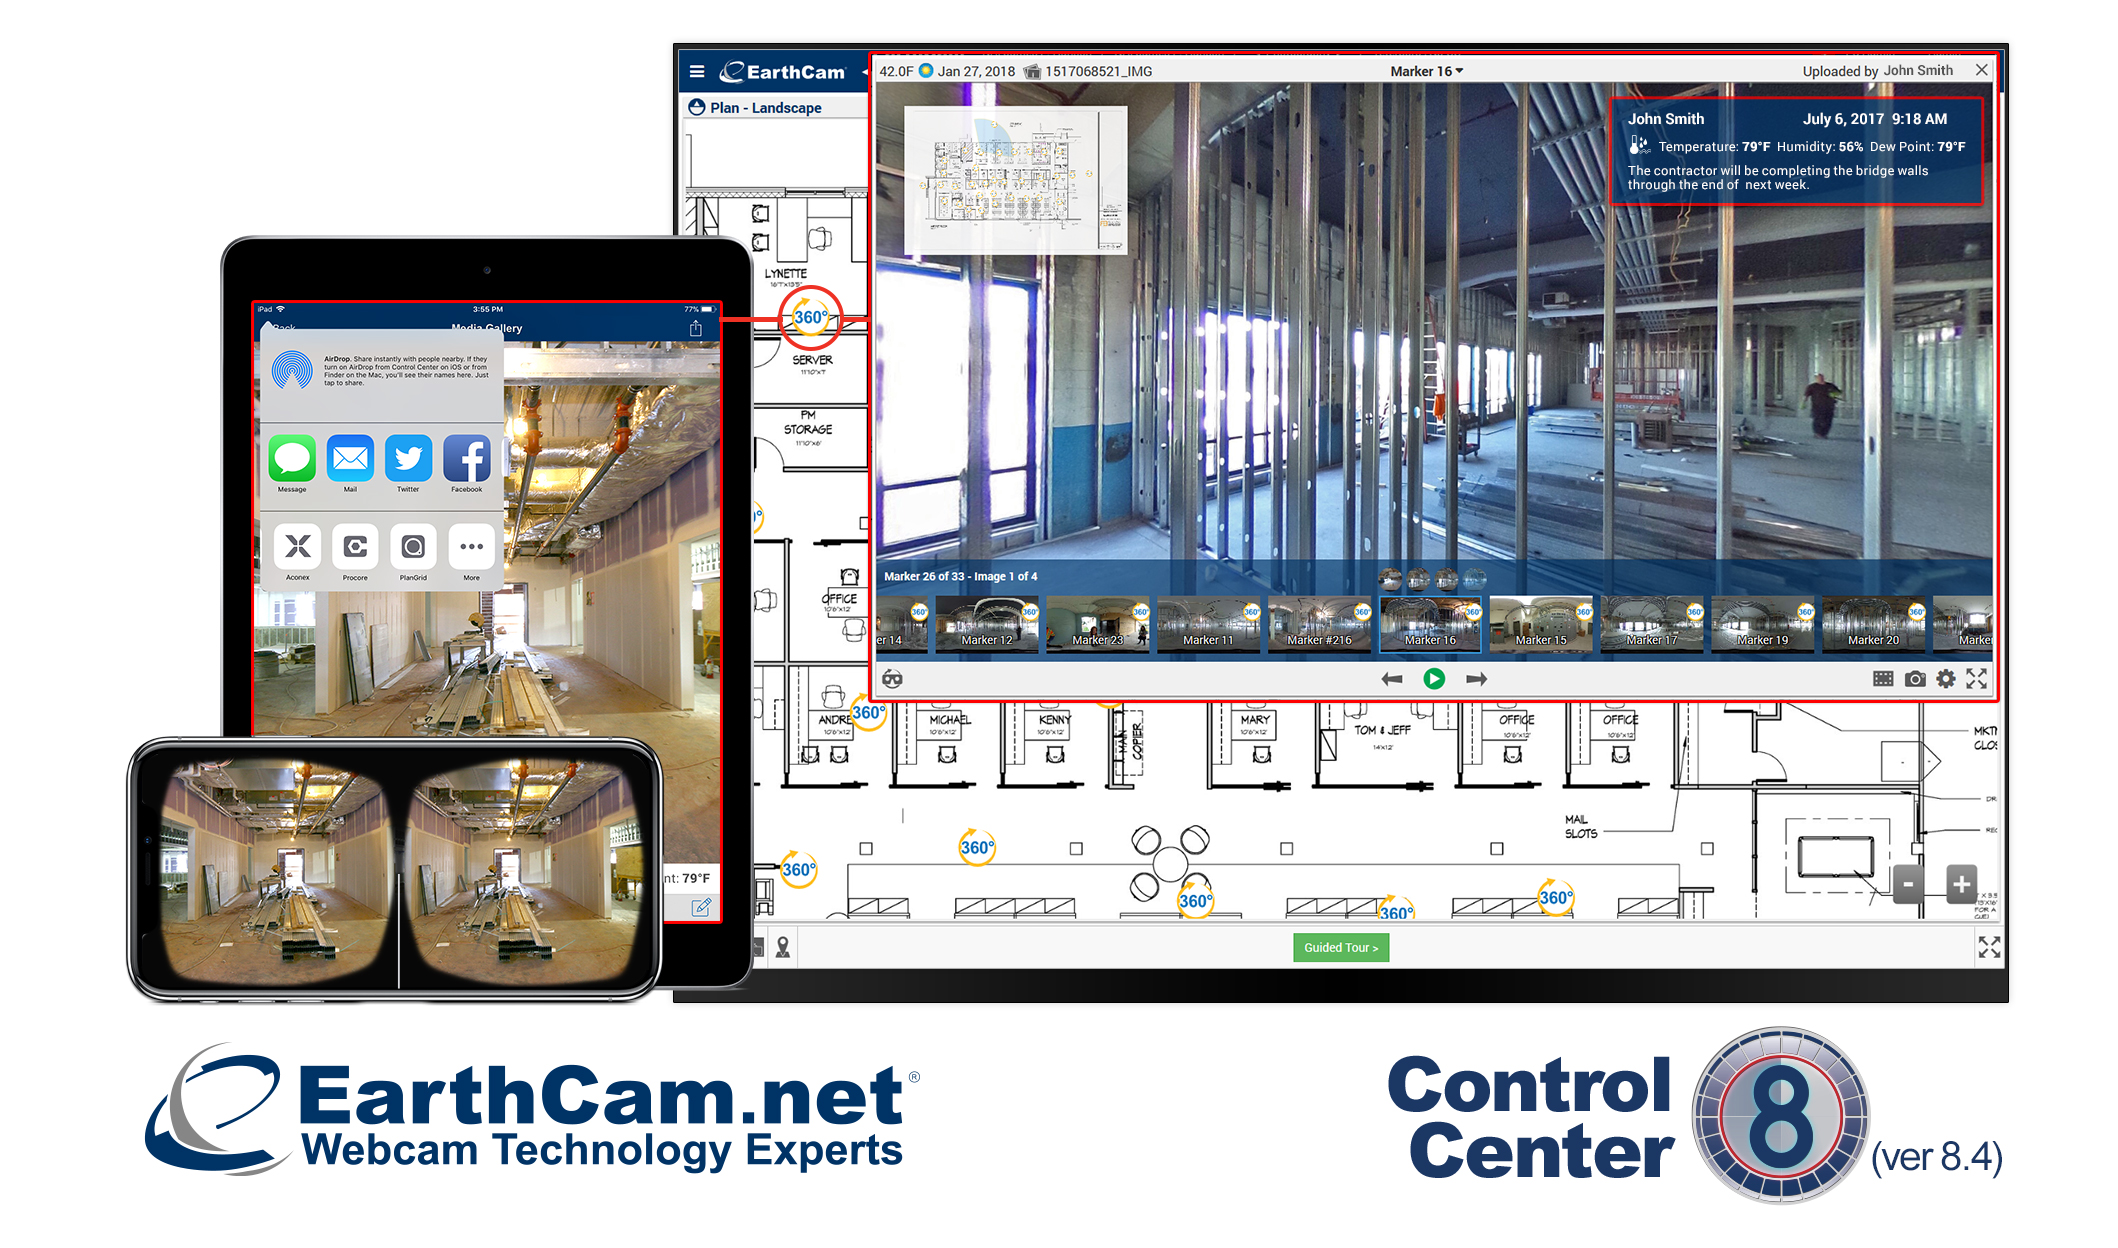 Earthcams control center 8 launches new construction camera the update to earthcams popular software features technological advancements for increasing jobsite productivity and faster generation of high quality gumiabroncs Gallery